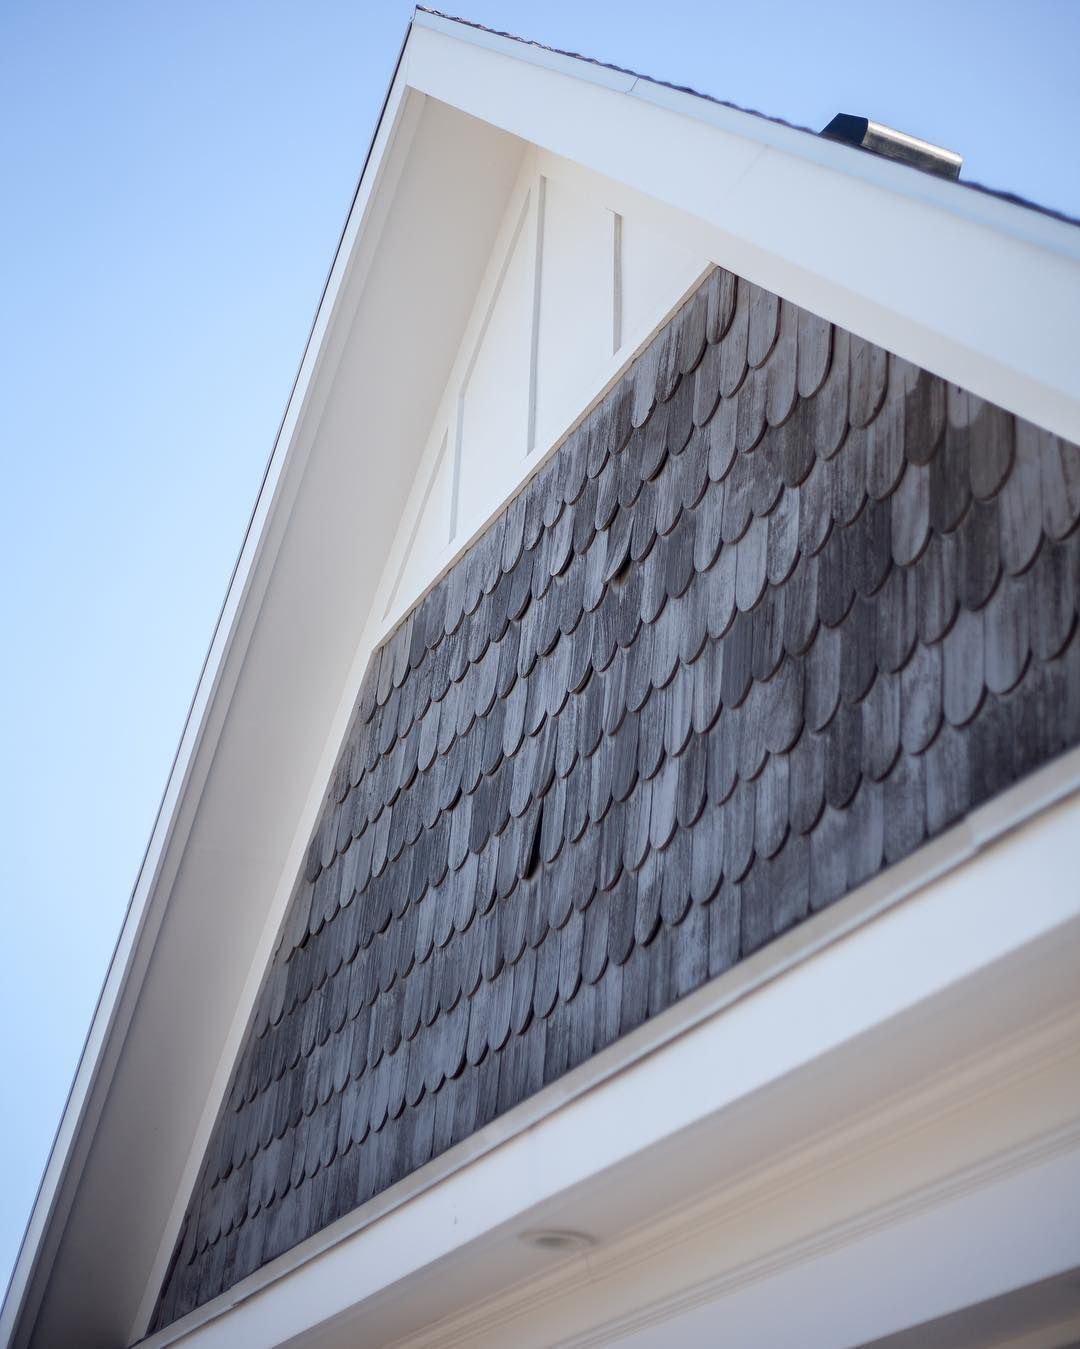 Best Gable End Shingles Google Search In 2019 Bungalow 400 x 300